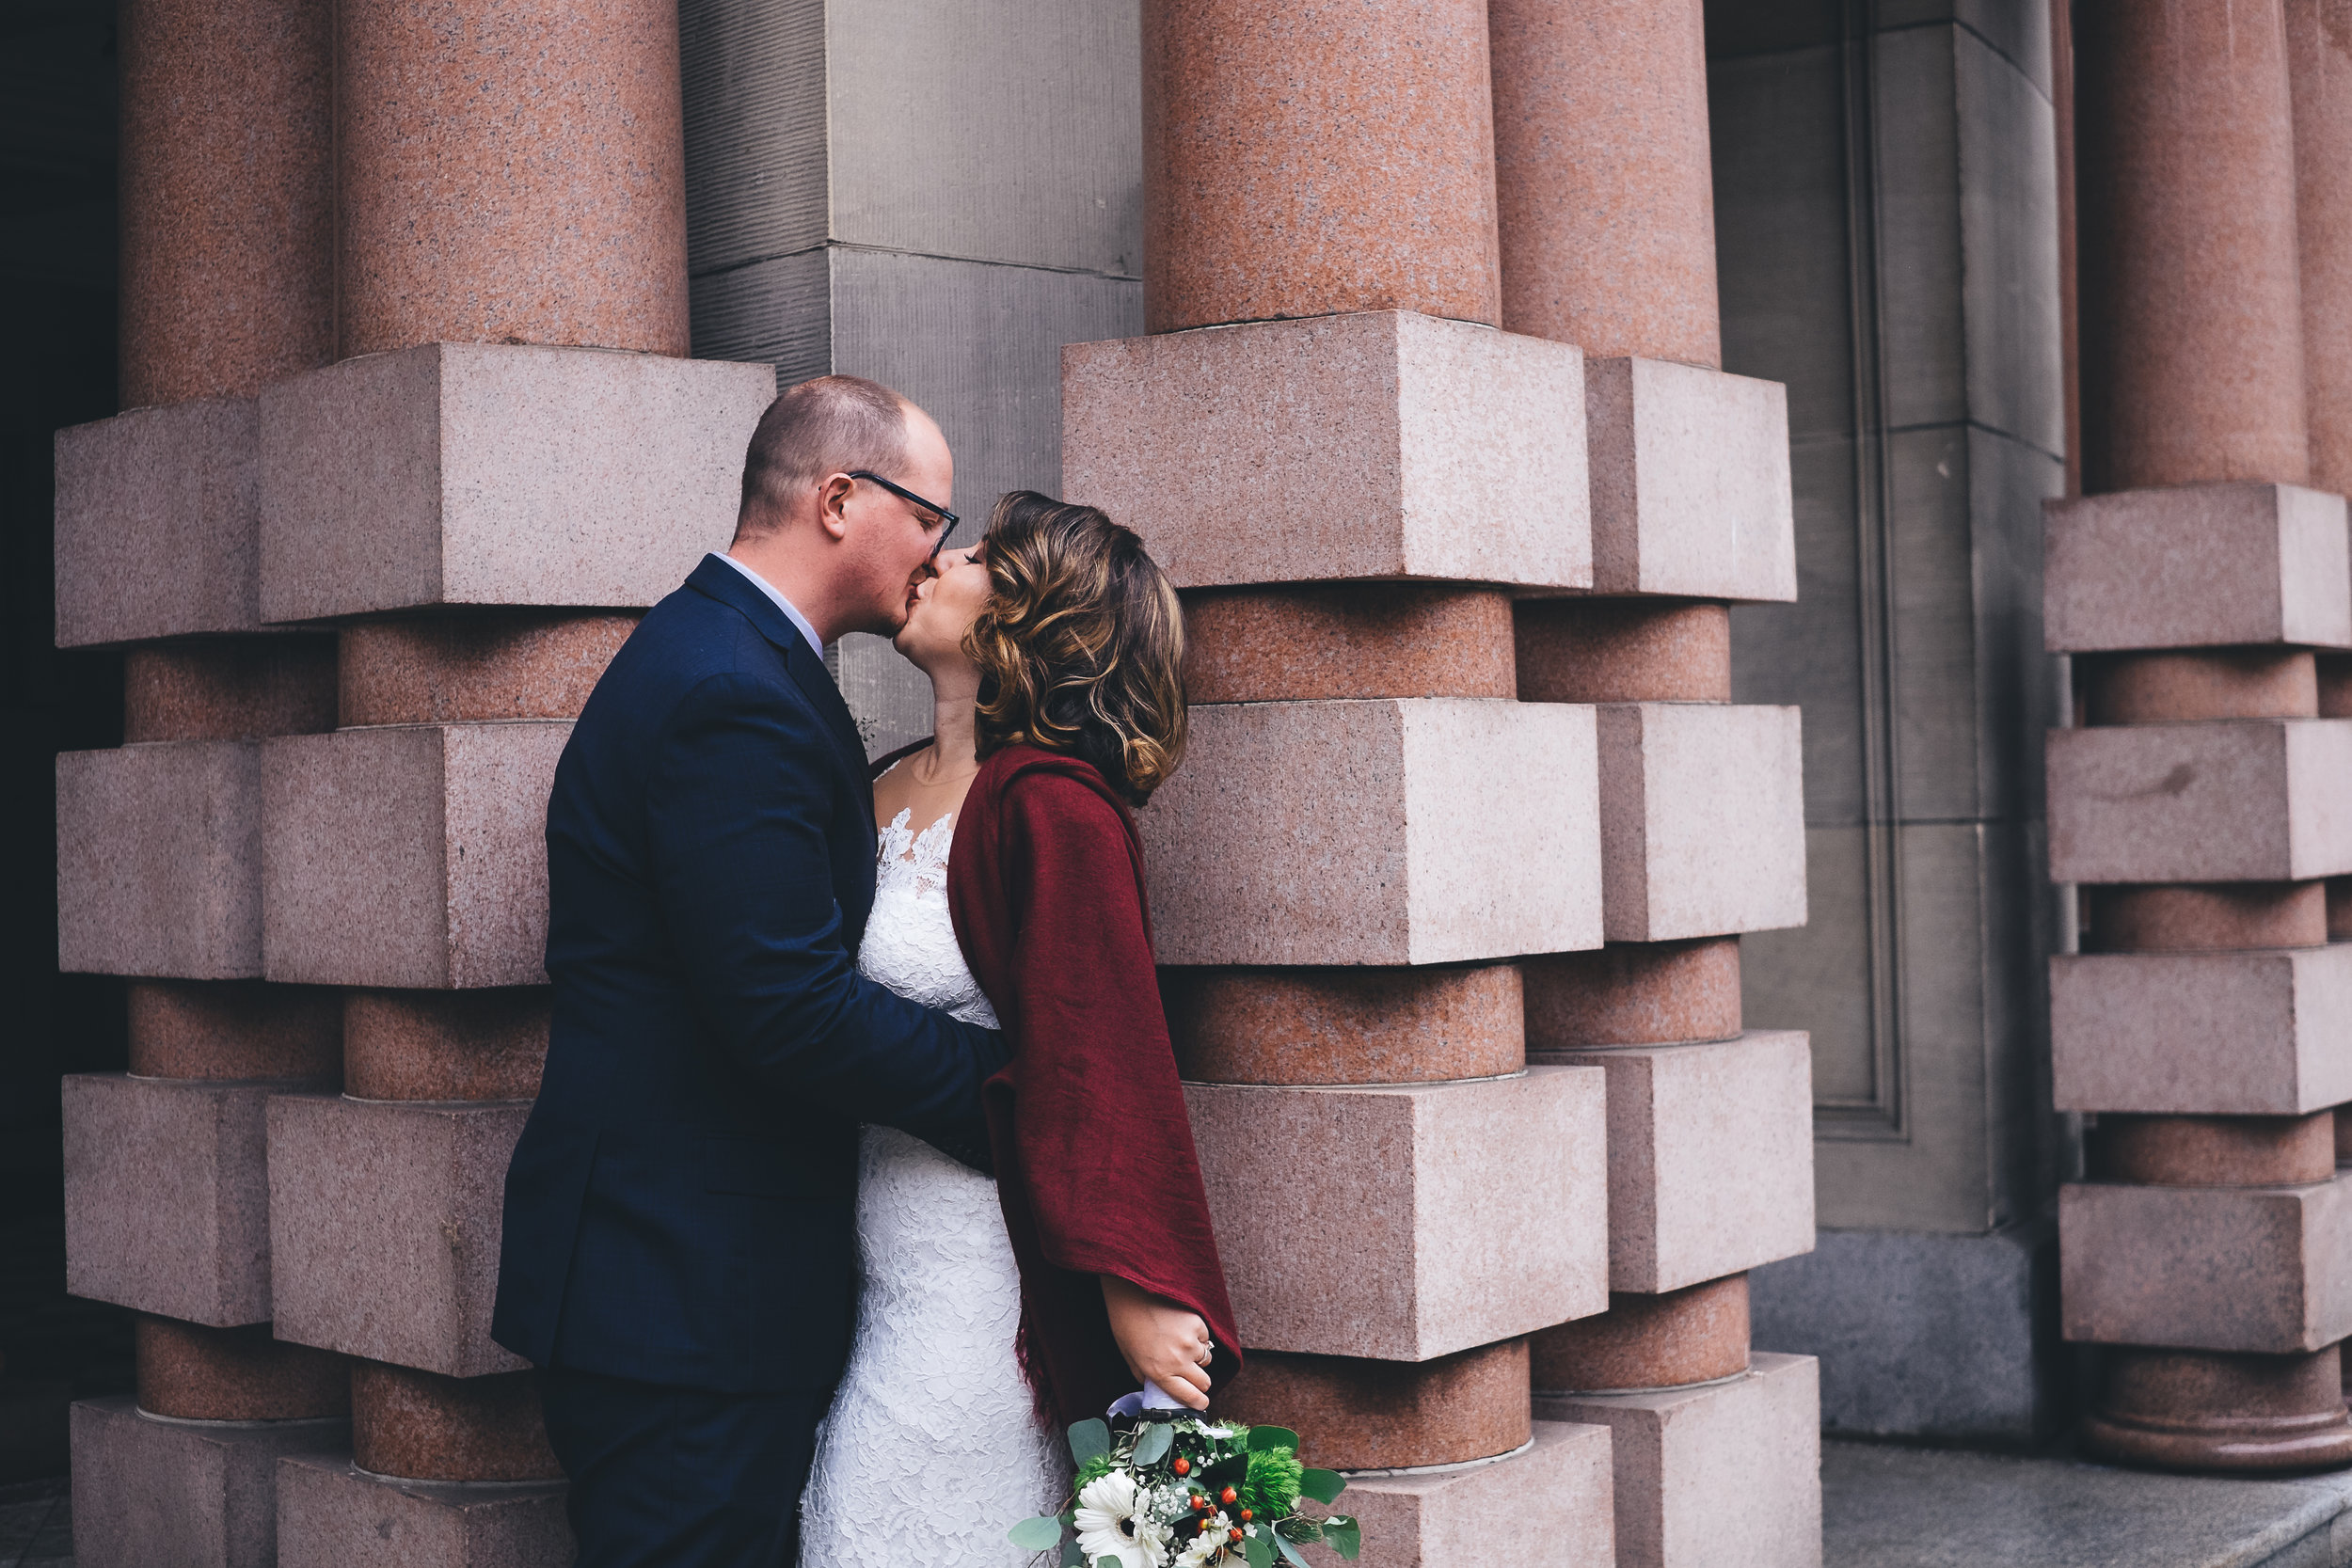 Portland, OR City Hall Elopement Courthouse Wedding-29.jpg